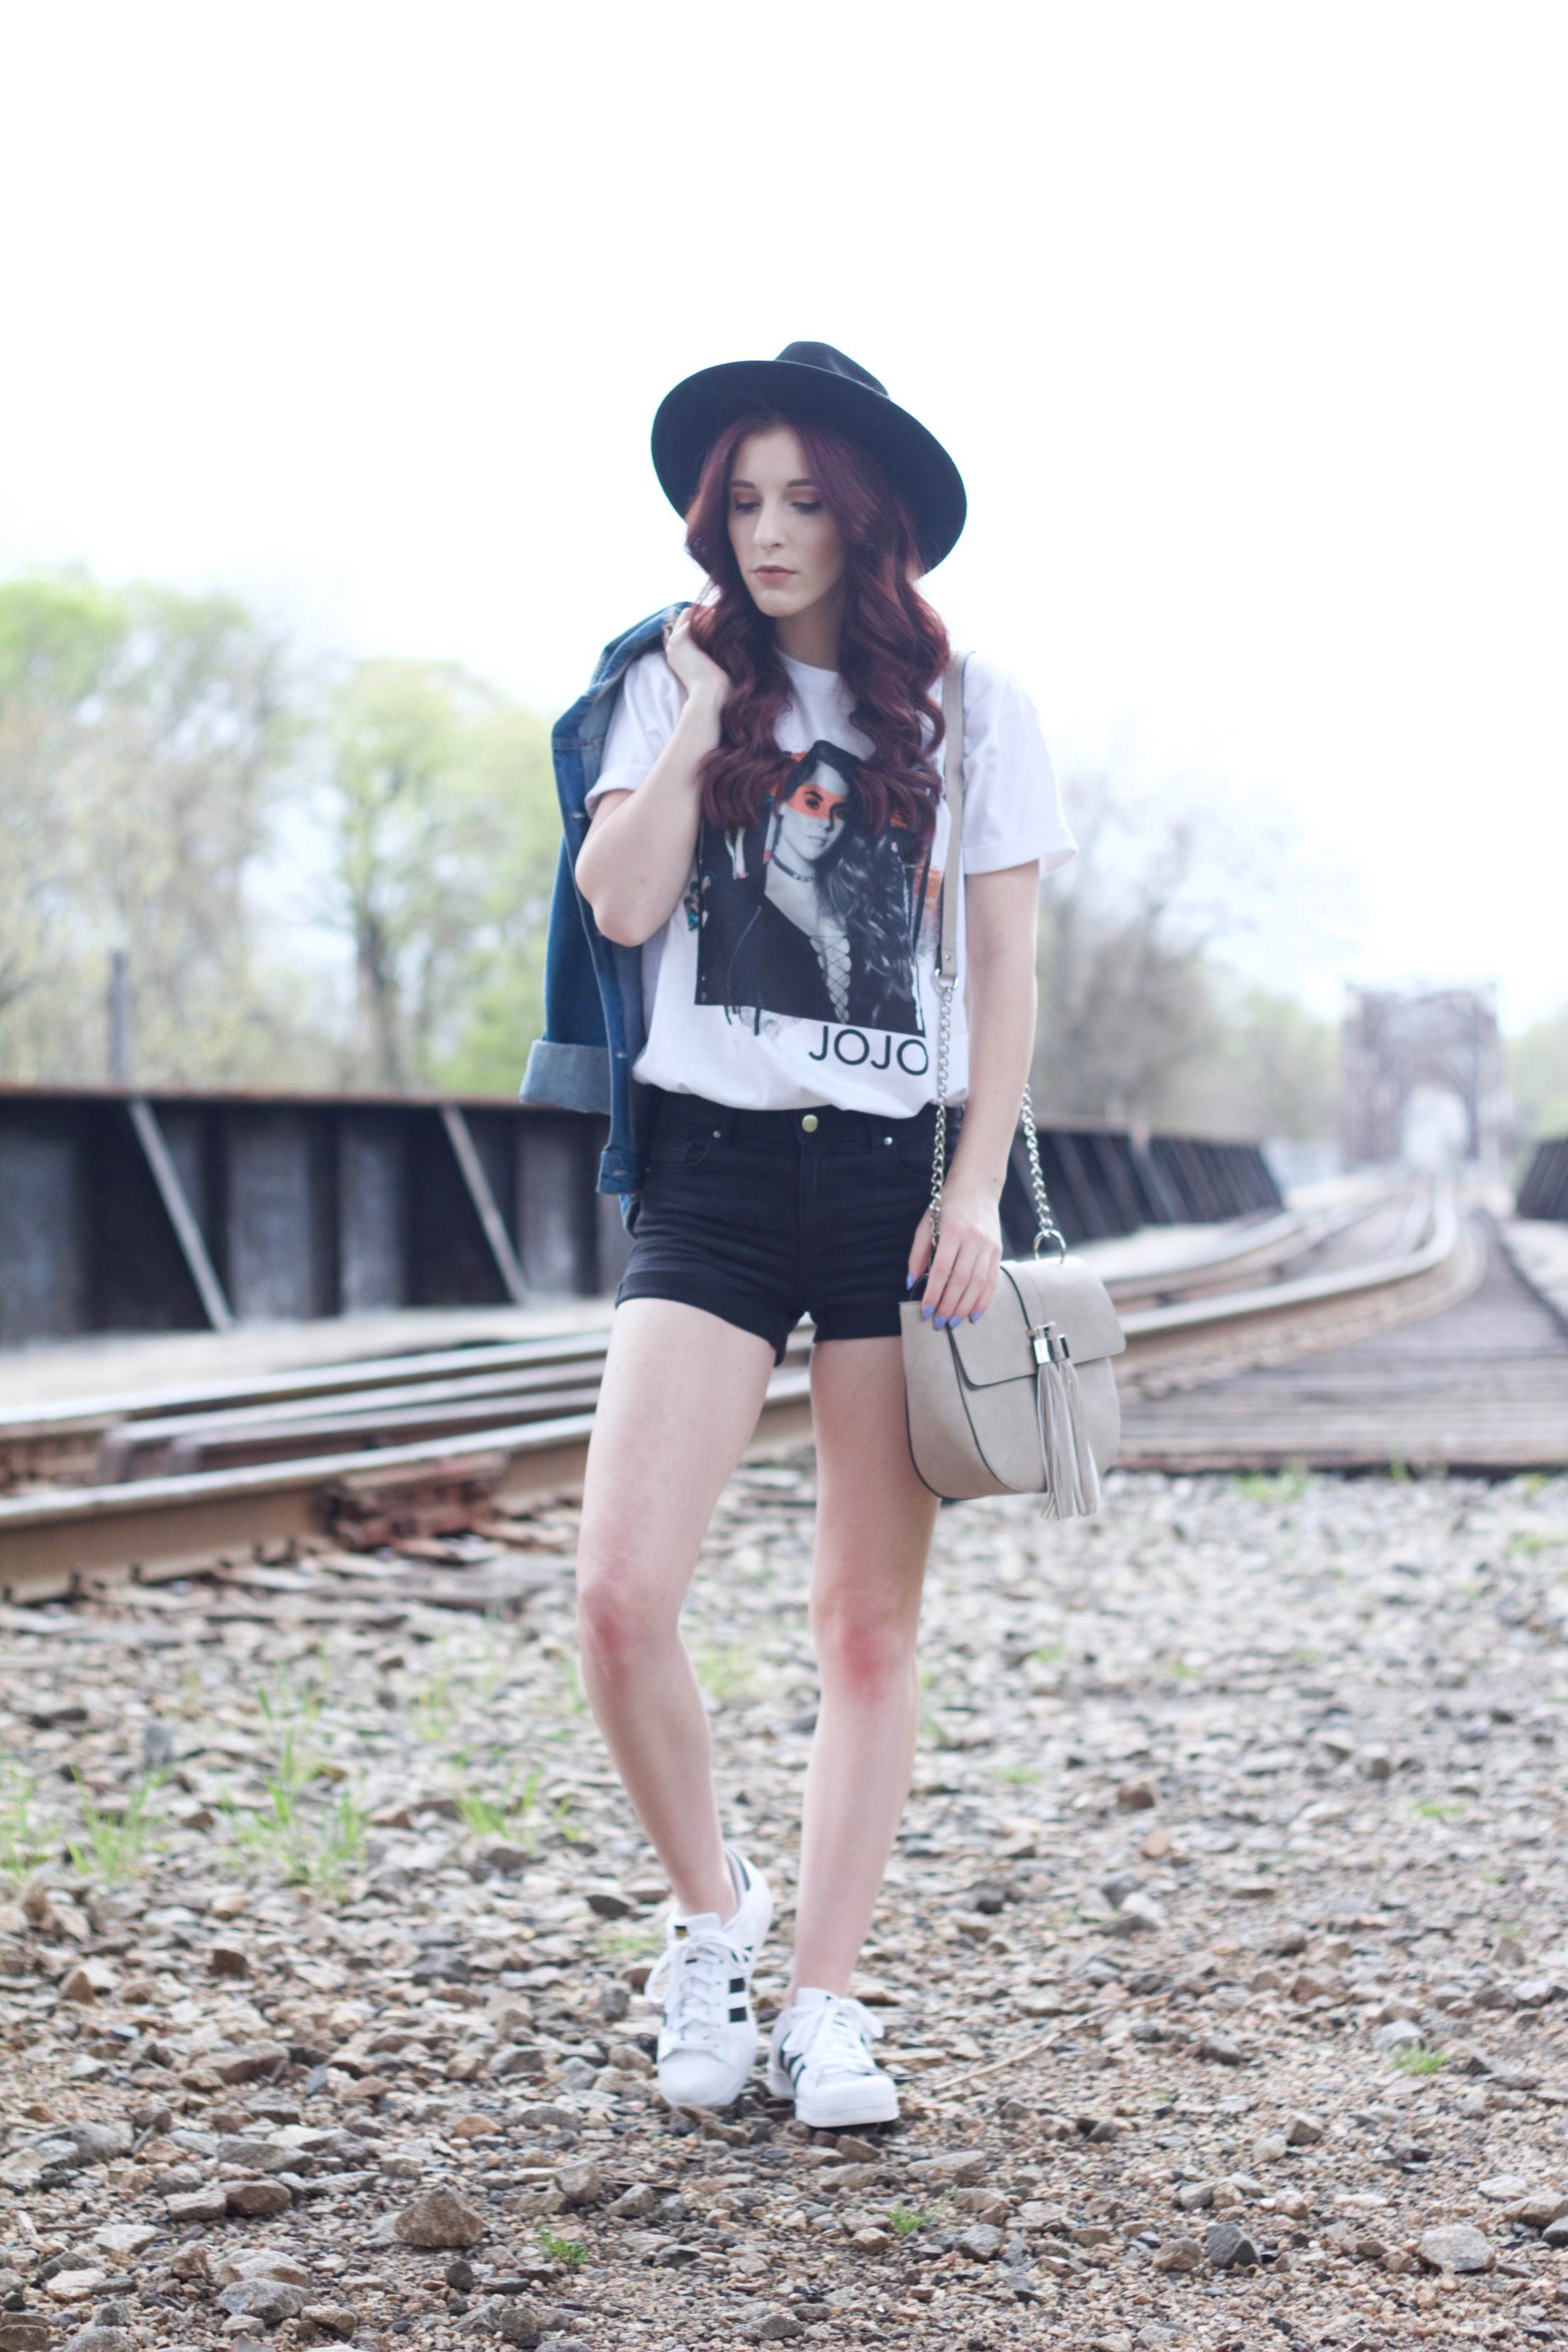 Mad Love: How to Wear a Band Tee for Festival Season